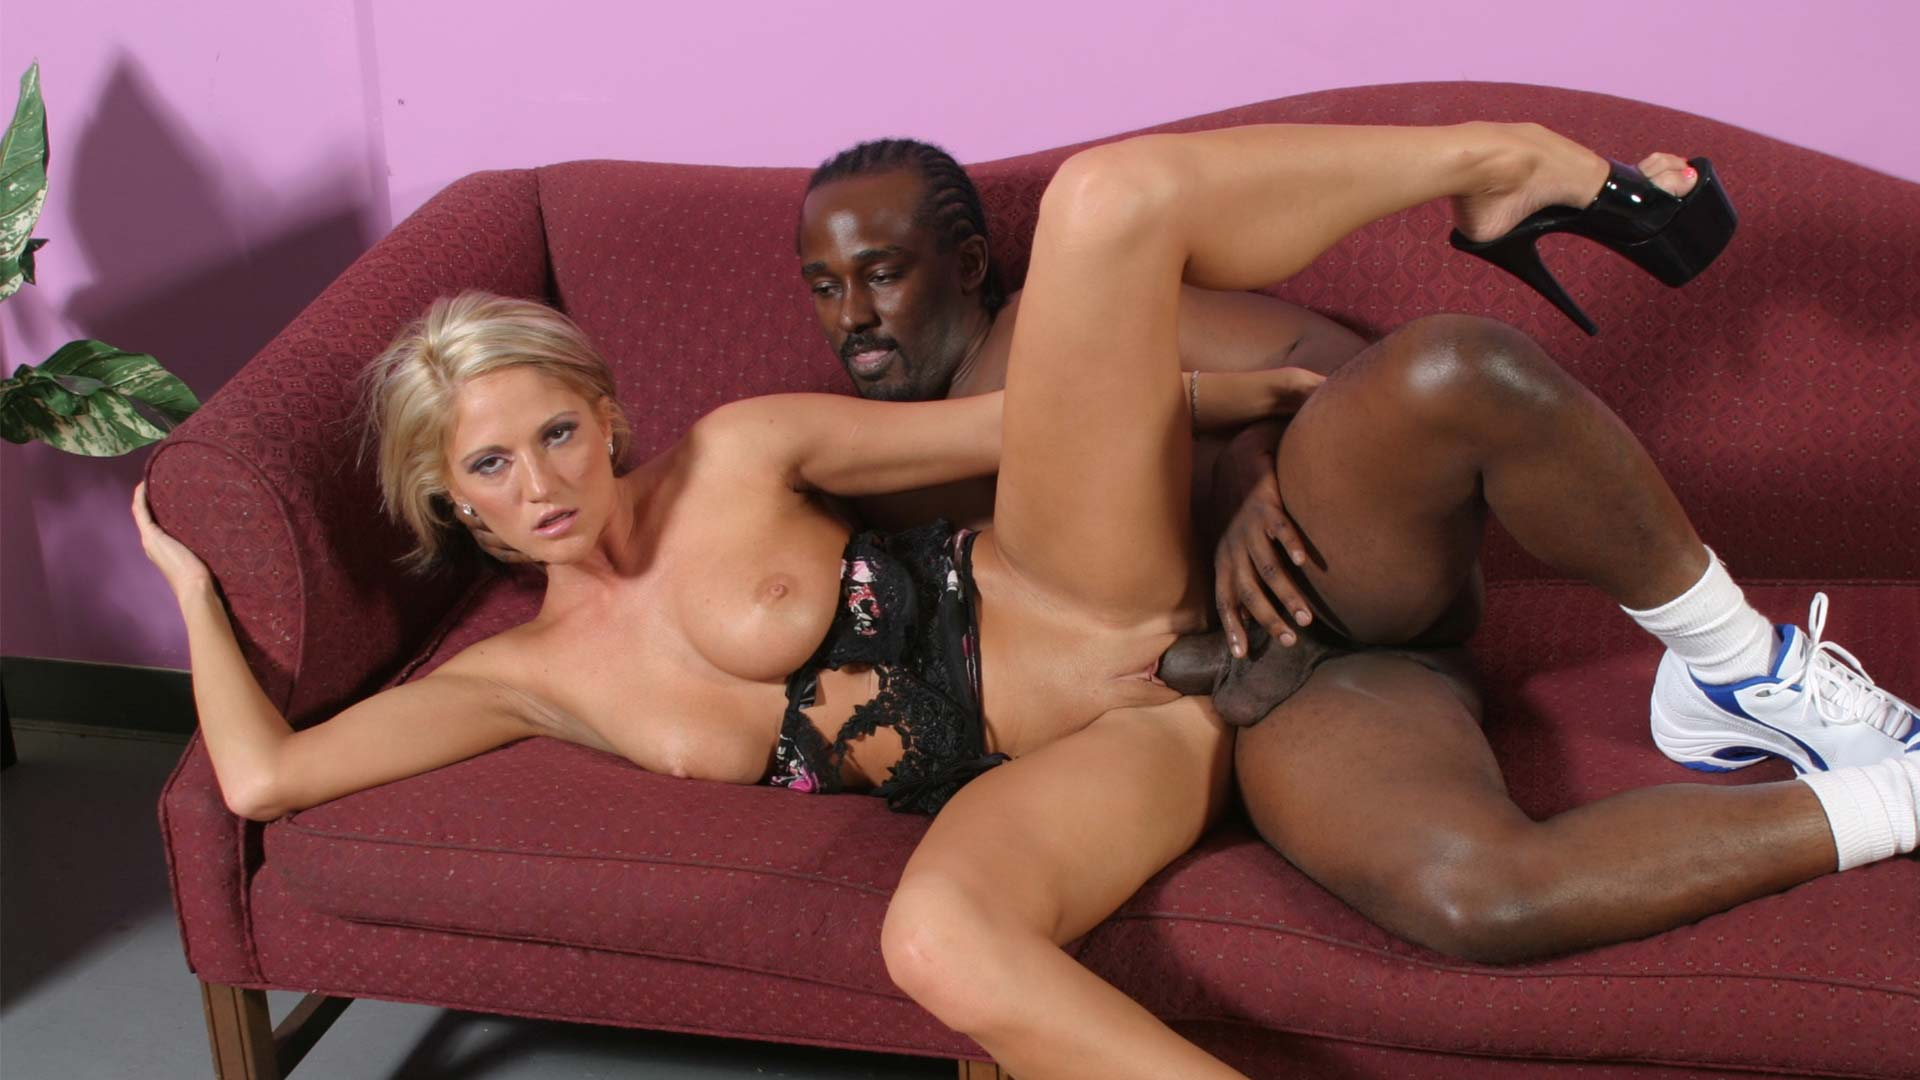 SpringThomas  Pound My Pink Hole Interracial Porn